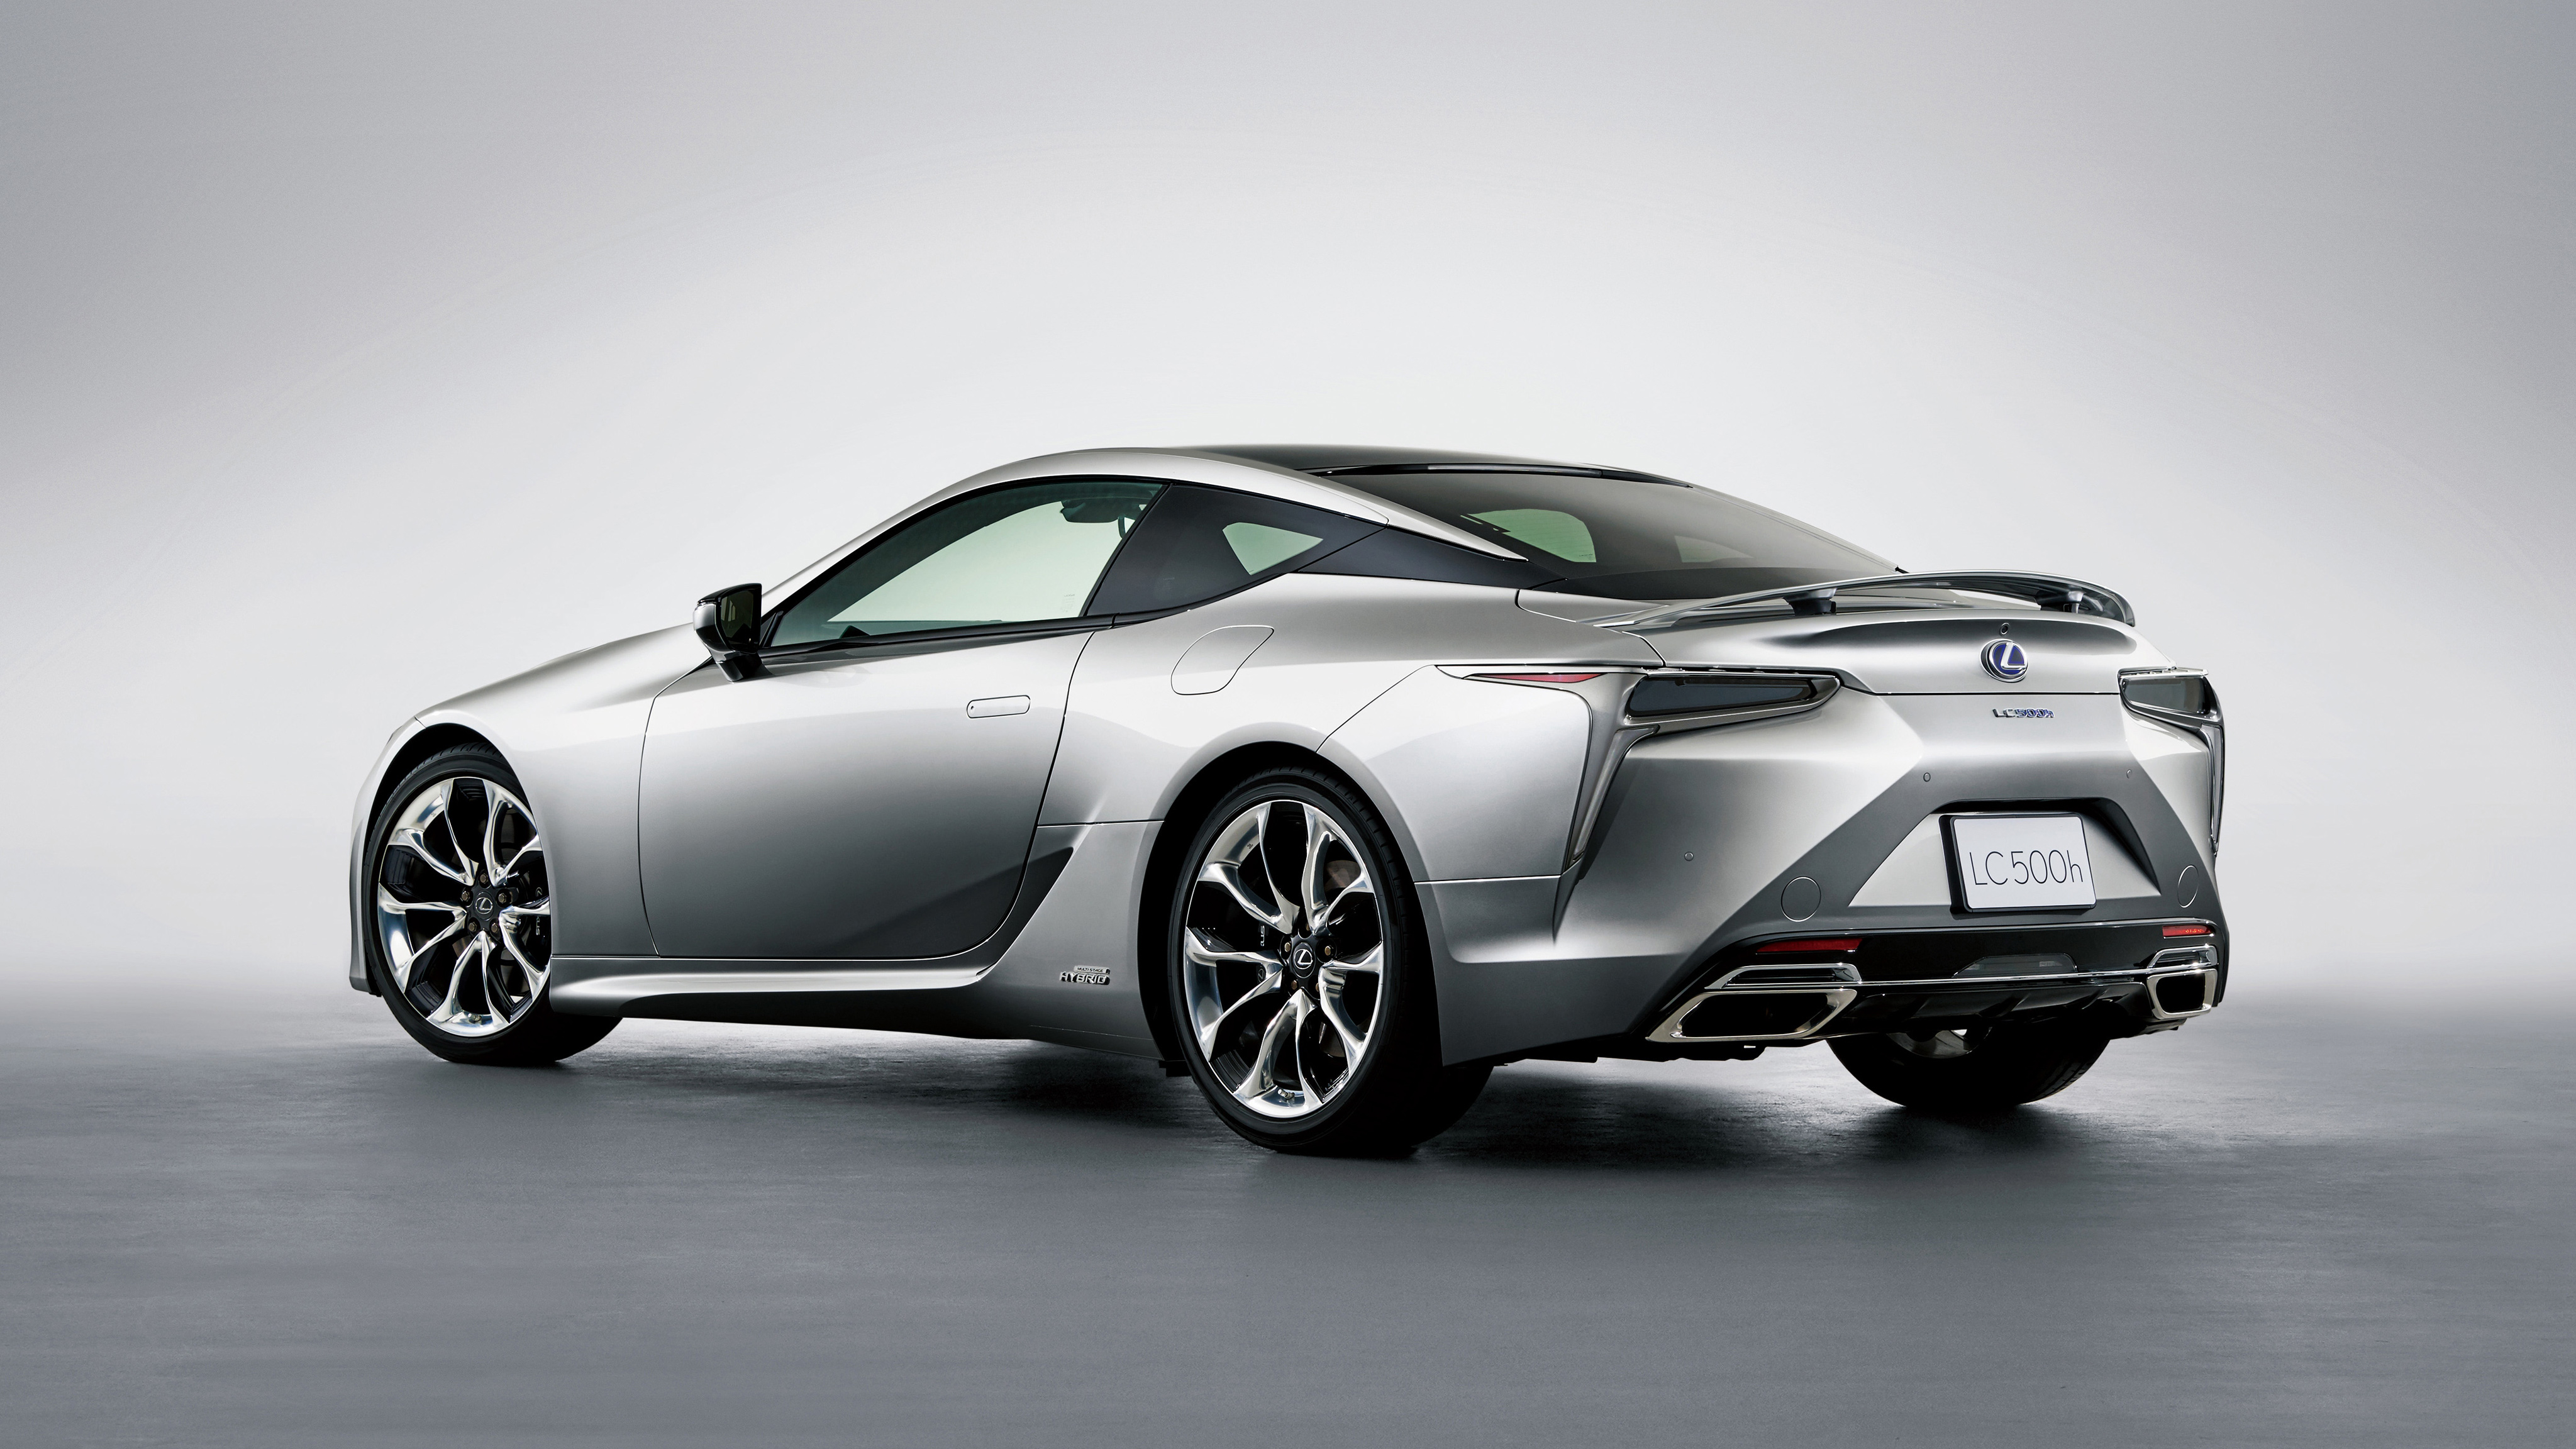 2018 Lexus LC500h Hybrid Coupe 4K 2 Wallpaper | HD Car Wallpapers